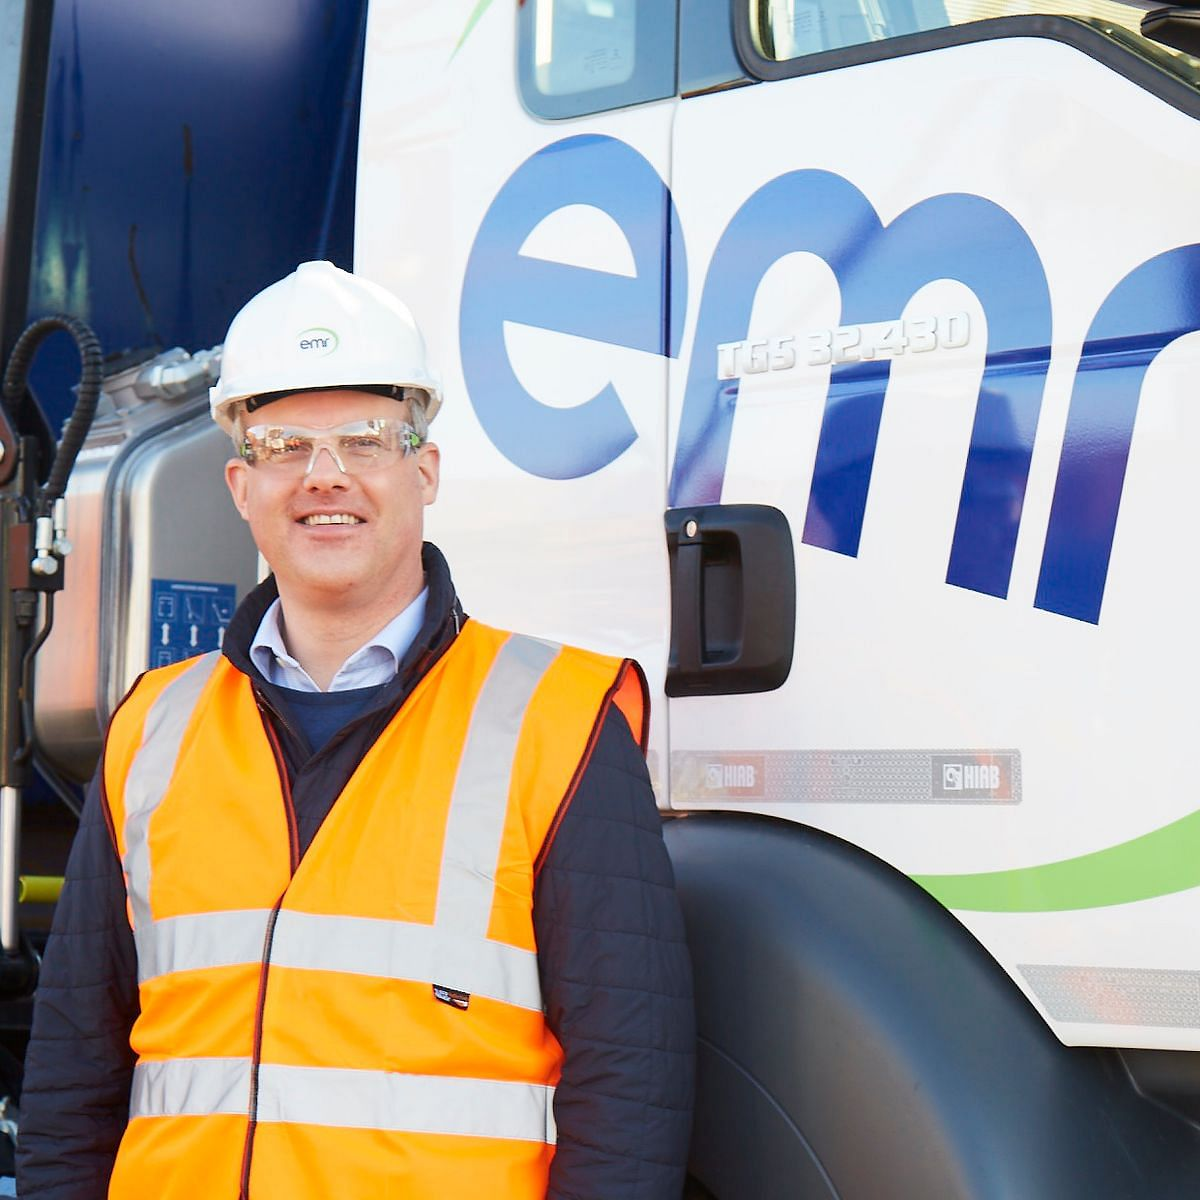 COVID Hit Scrap Giant EMR Closes 2 Sites in UK & to Cut 250 Jobs